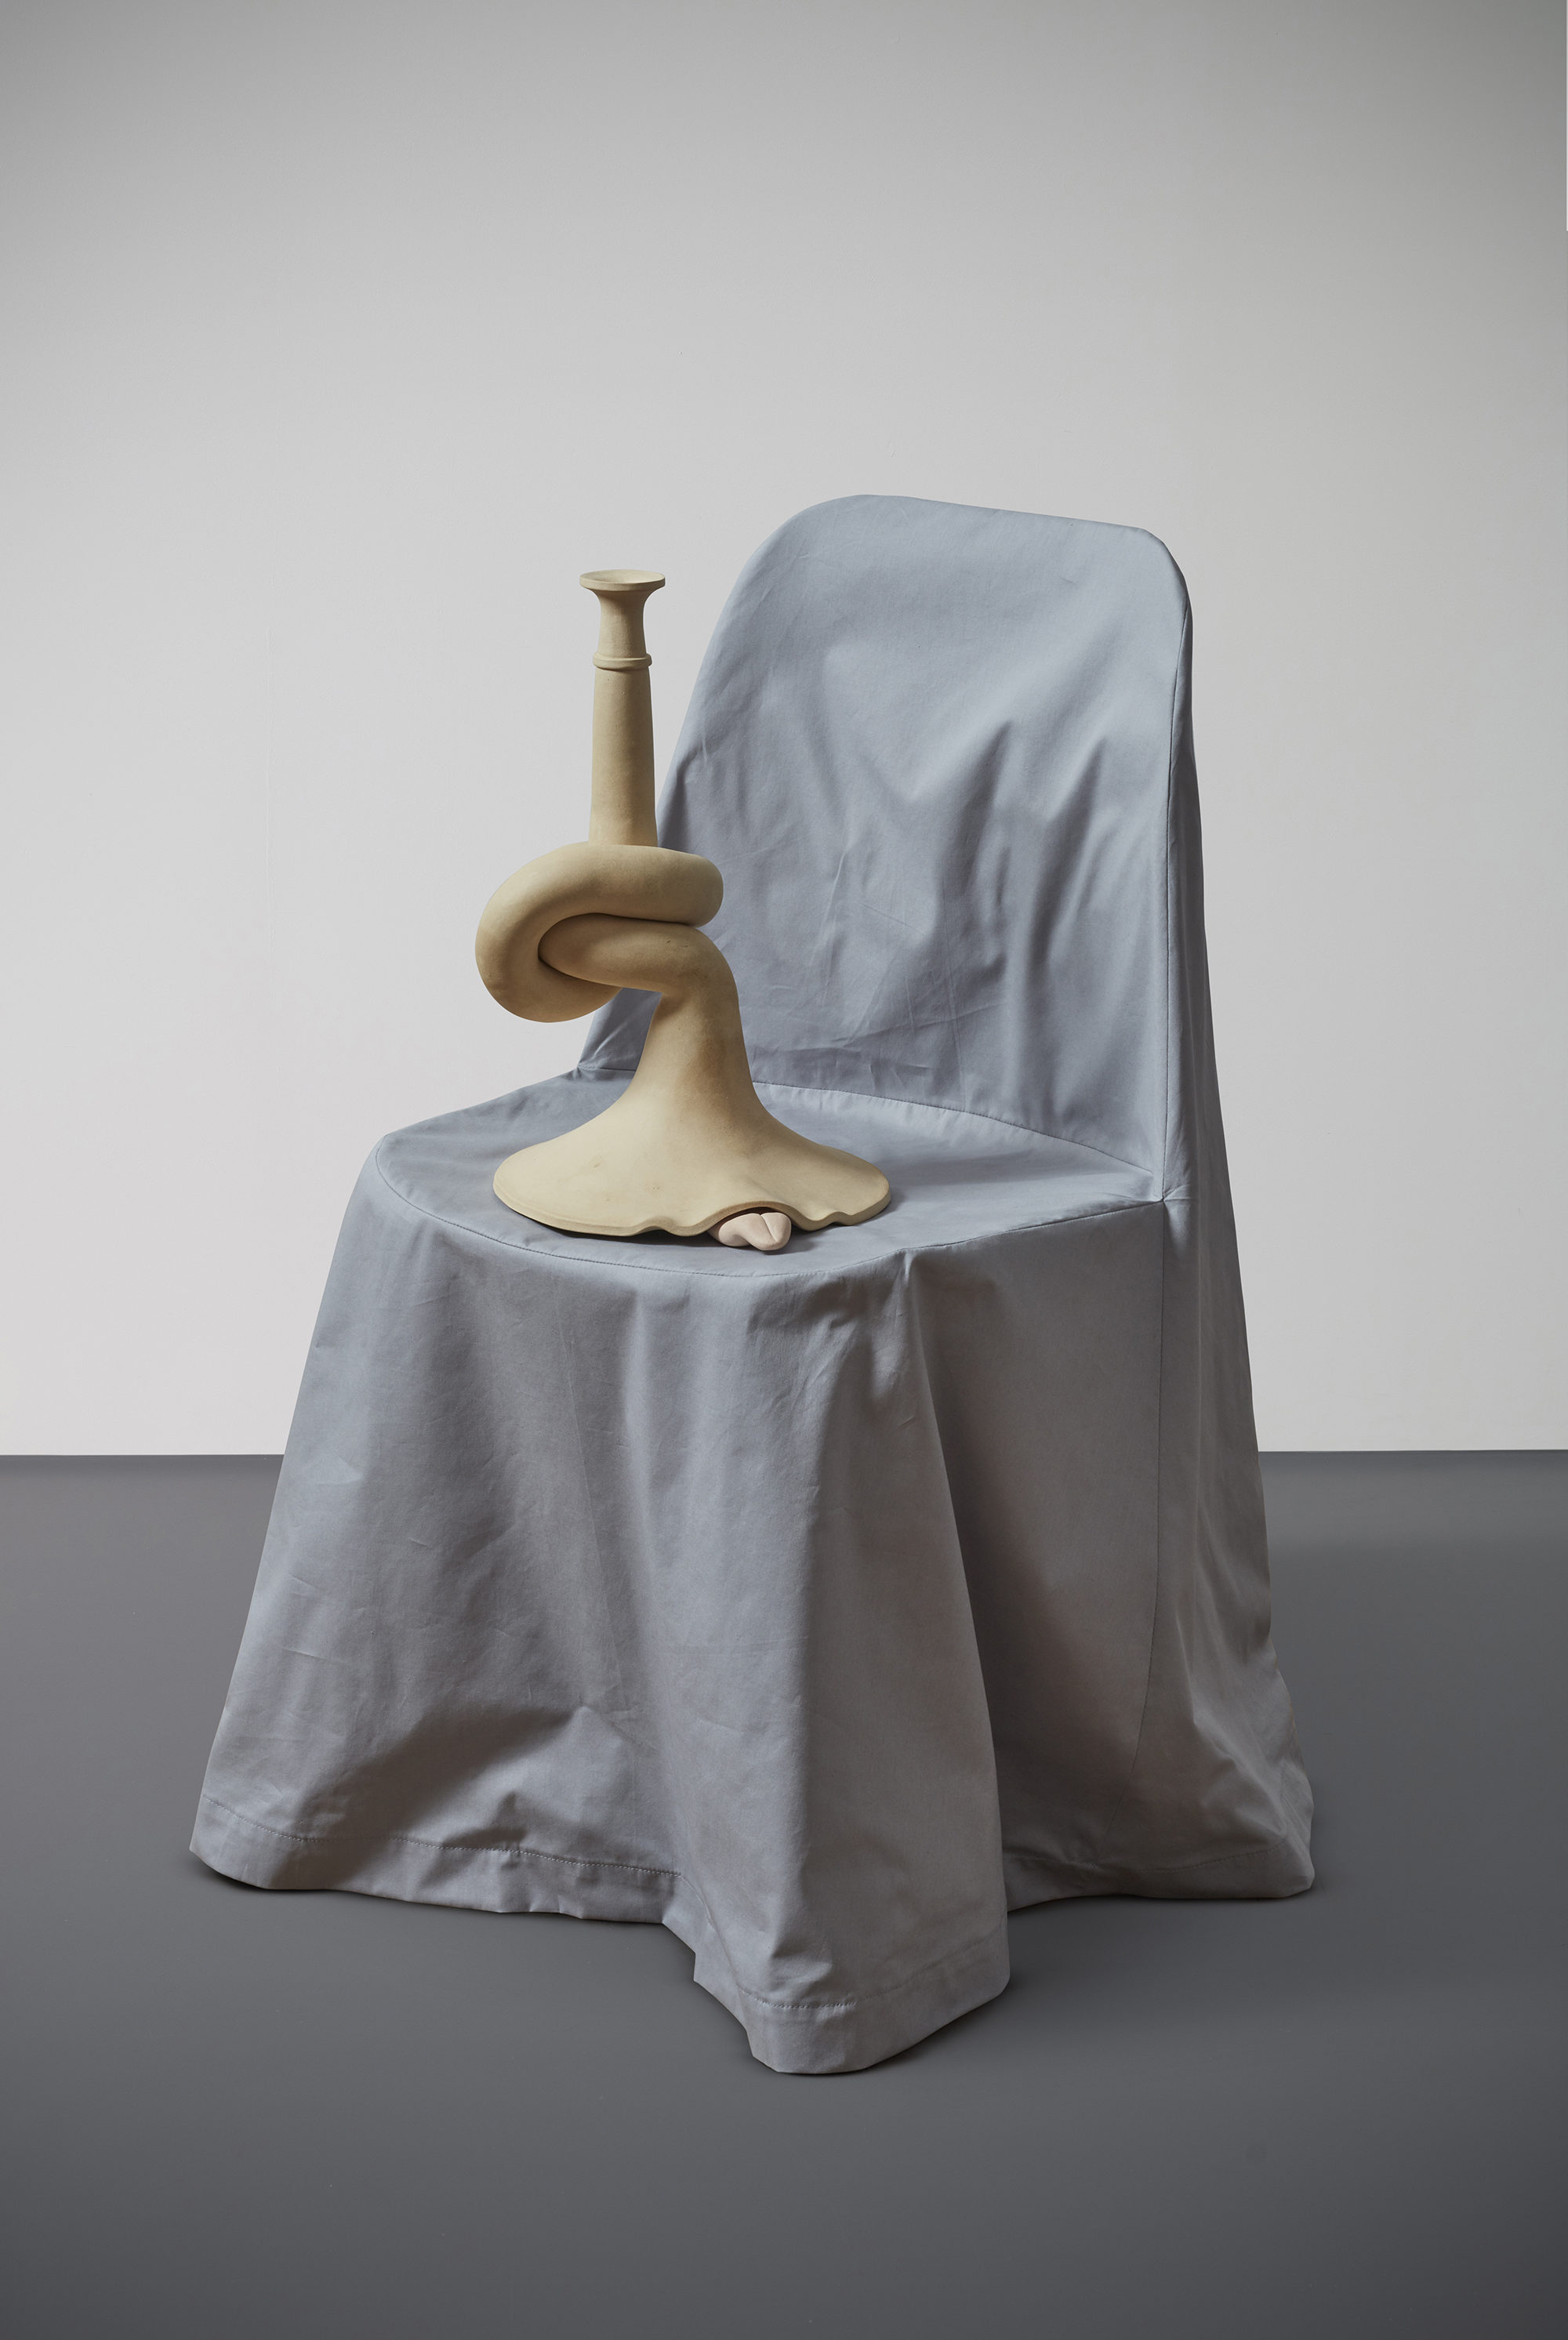 Small sculptural object on a gray chair